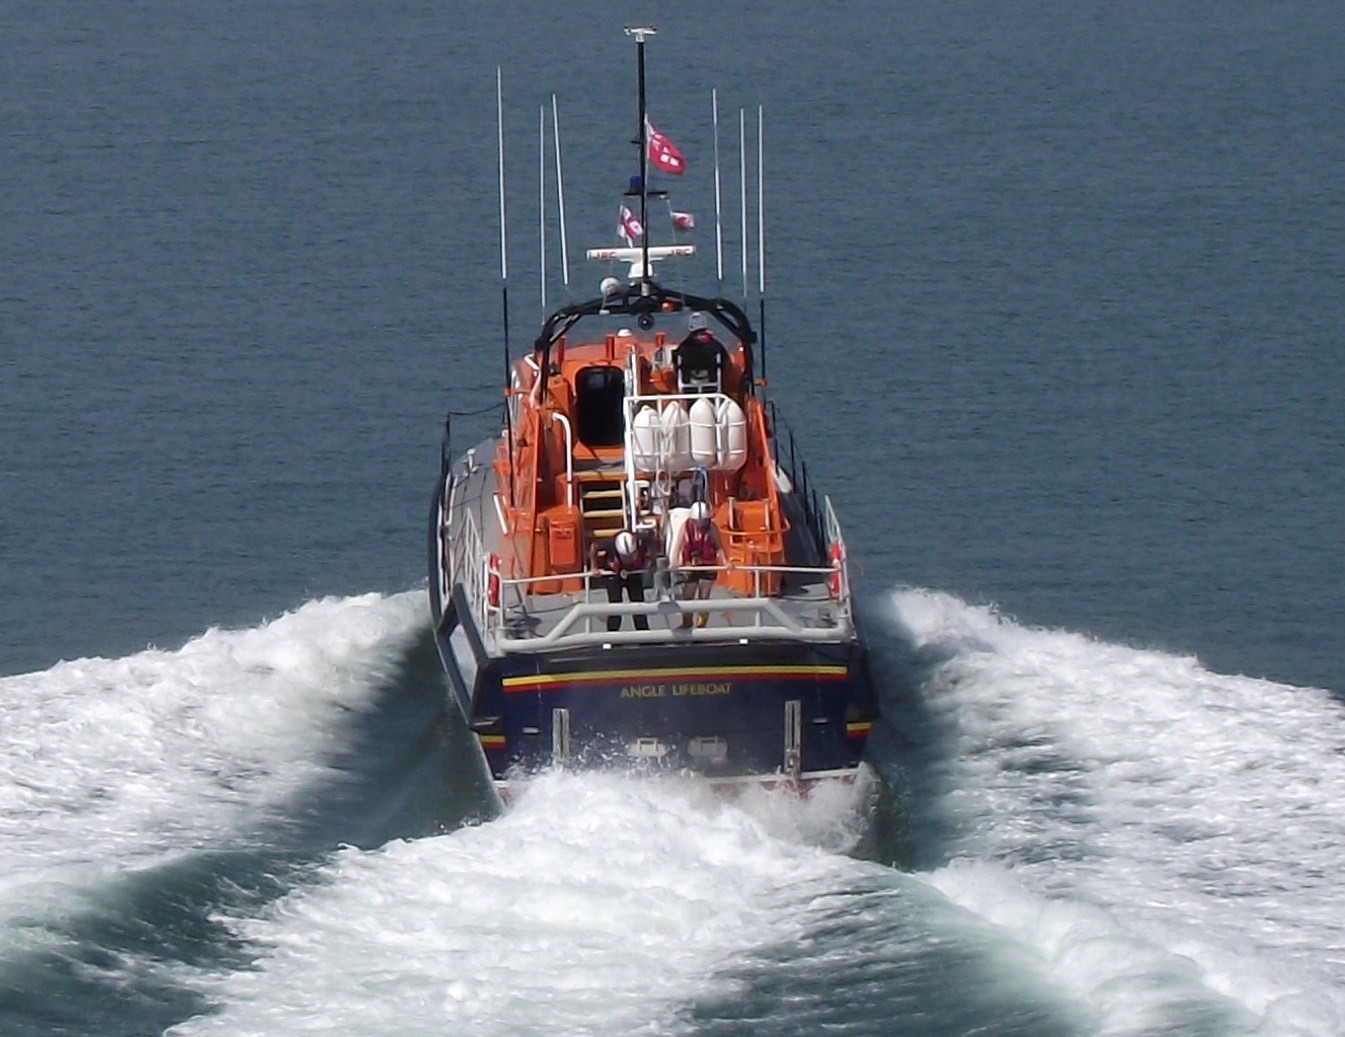 The RNLI Angle lifeboat PICTURE: Mark Mason